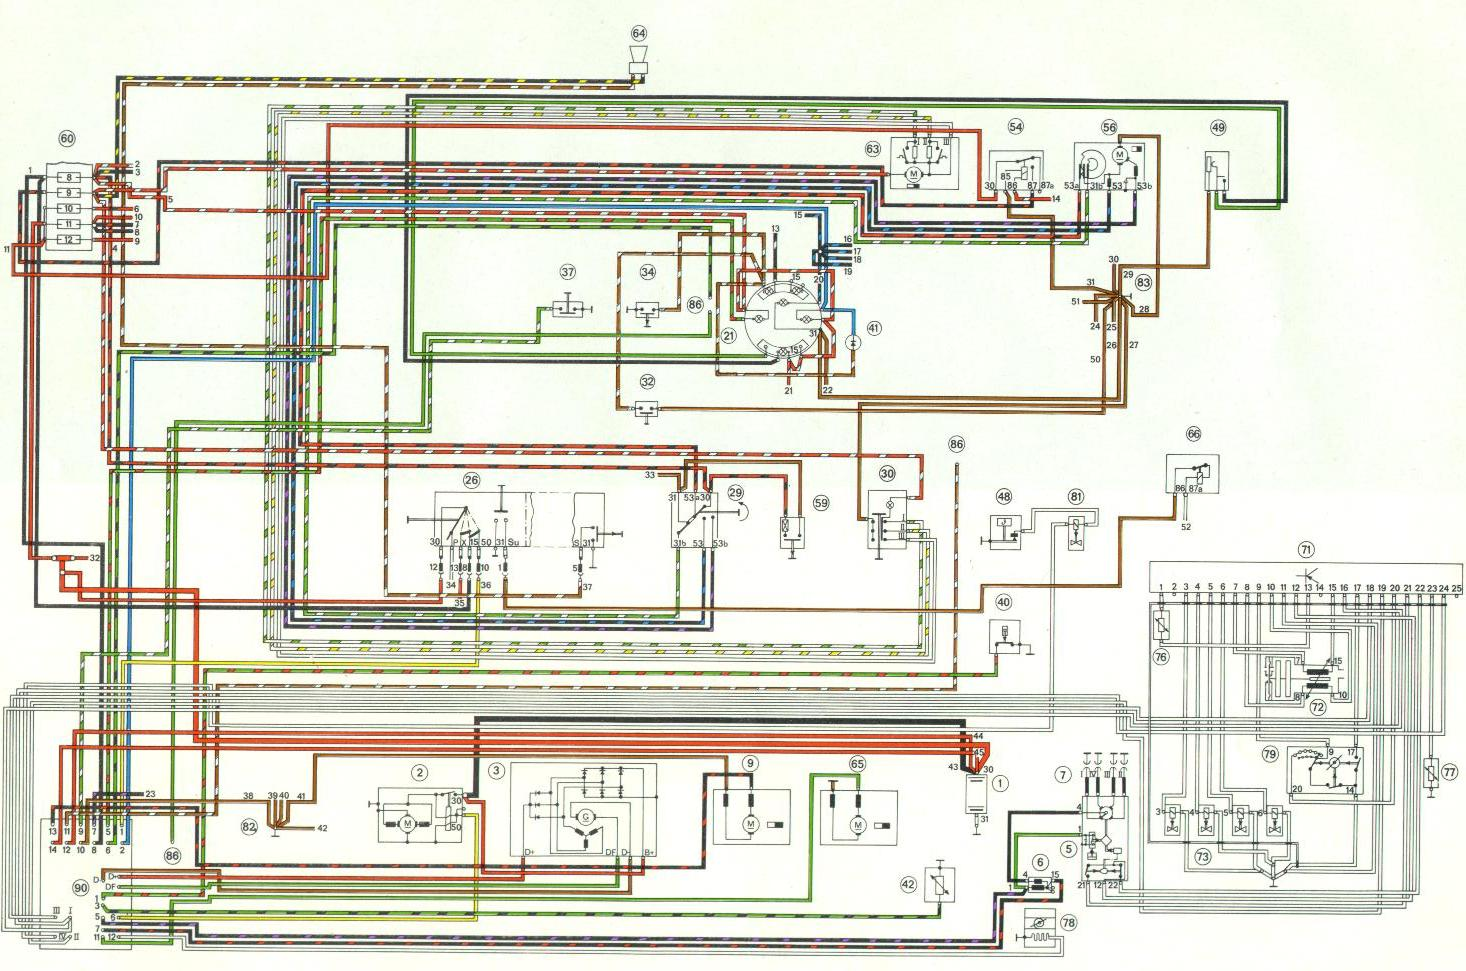 www.pelicanparts.com 179 1304103702.1 1975 porsche 914 wiring diagram 1974 porsche fuel system diagram 1971 porsche 911 wiring diagram at fashall.co